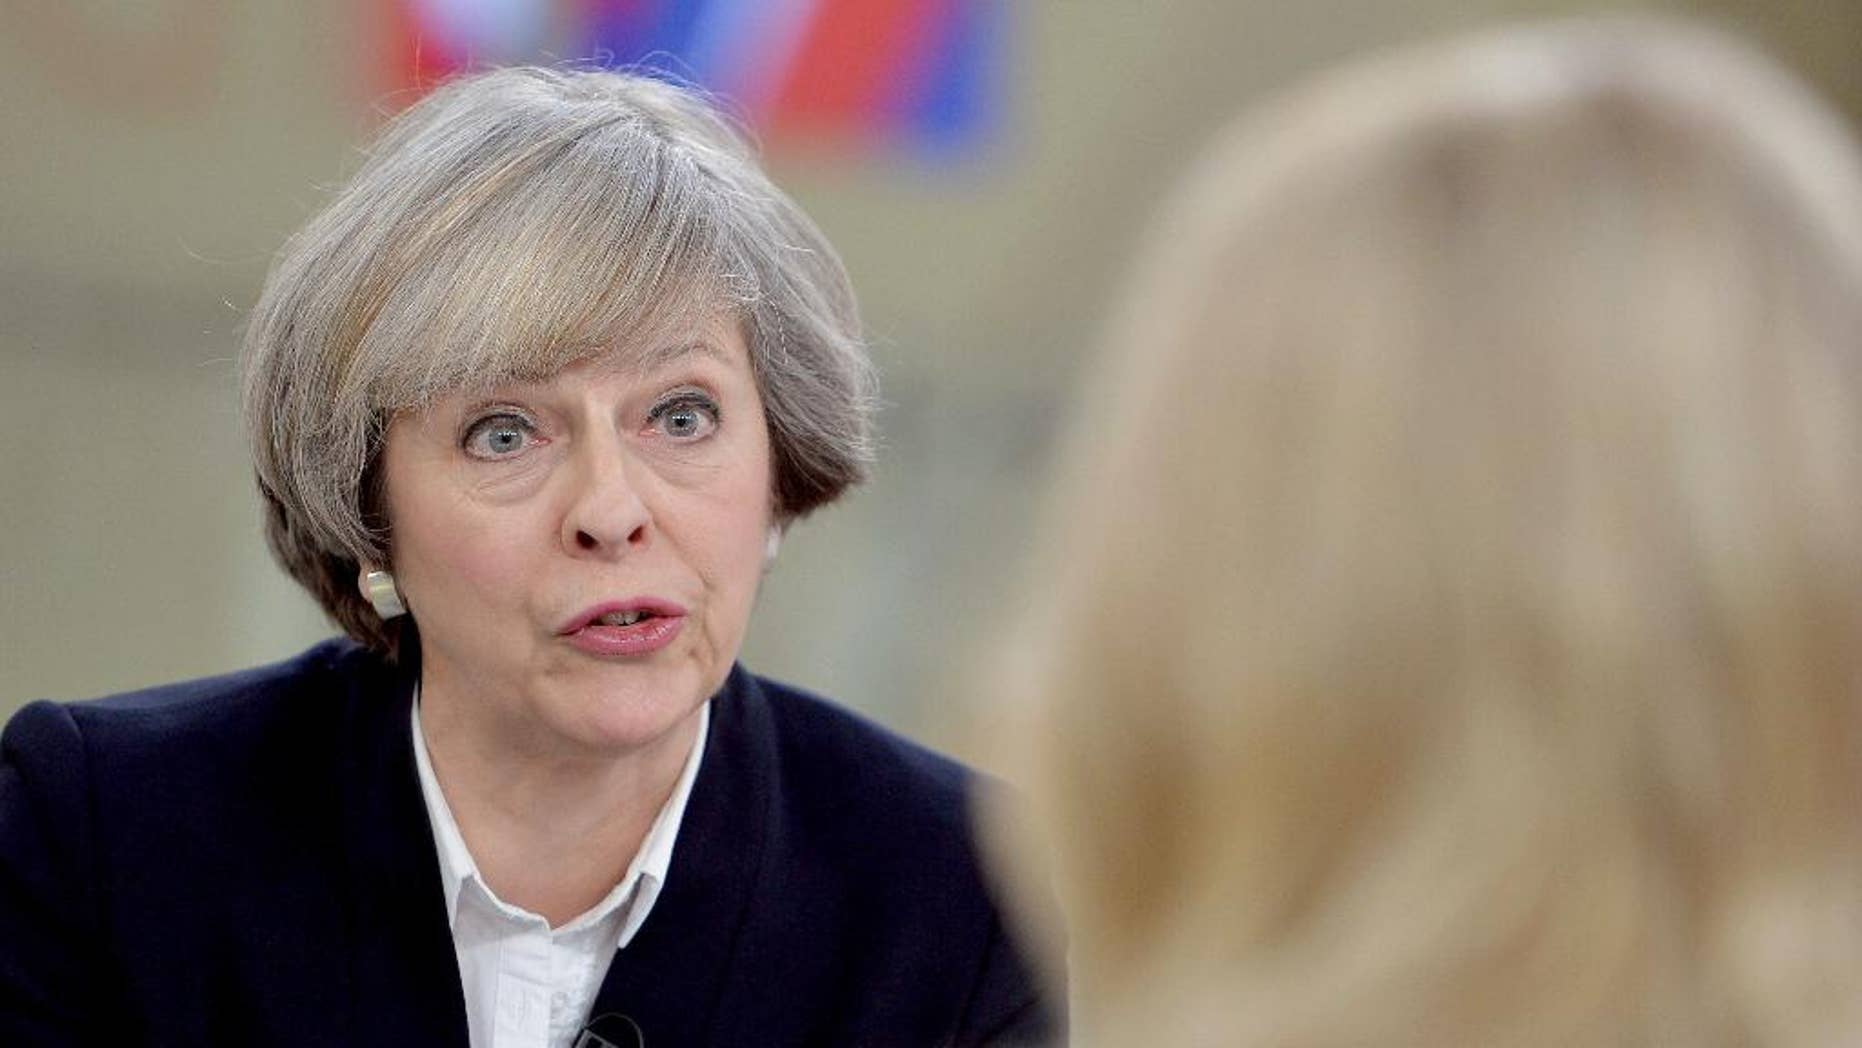 """Britain's Prime Minister Theresa May, left, is interviewed by Sophy Ridge for a television channel, in London, Sunday Jan.  8, 2017. May said Sunday she will announce details of Britain's European Union exit plans in the next few weeks, and denied a former diplomat's claim that the government is """"muddled"""" about Brexit. (John Stillwell/PA via AP)"""